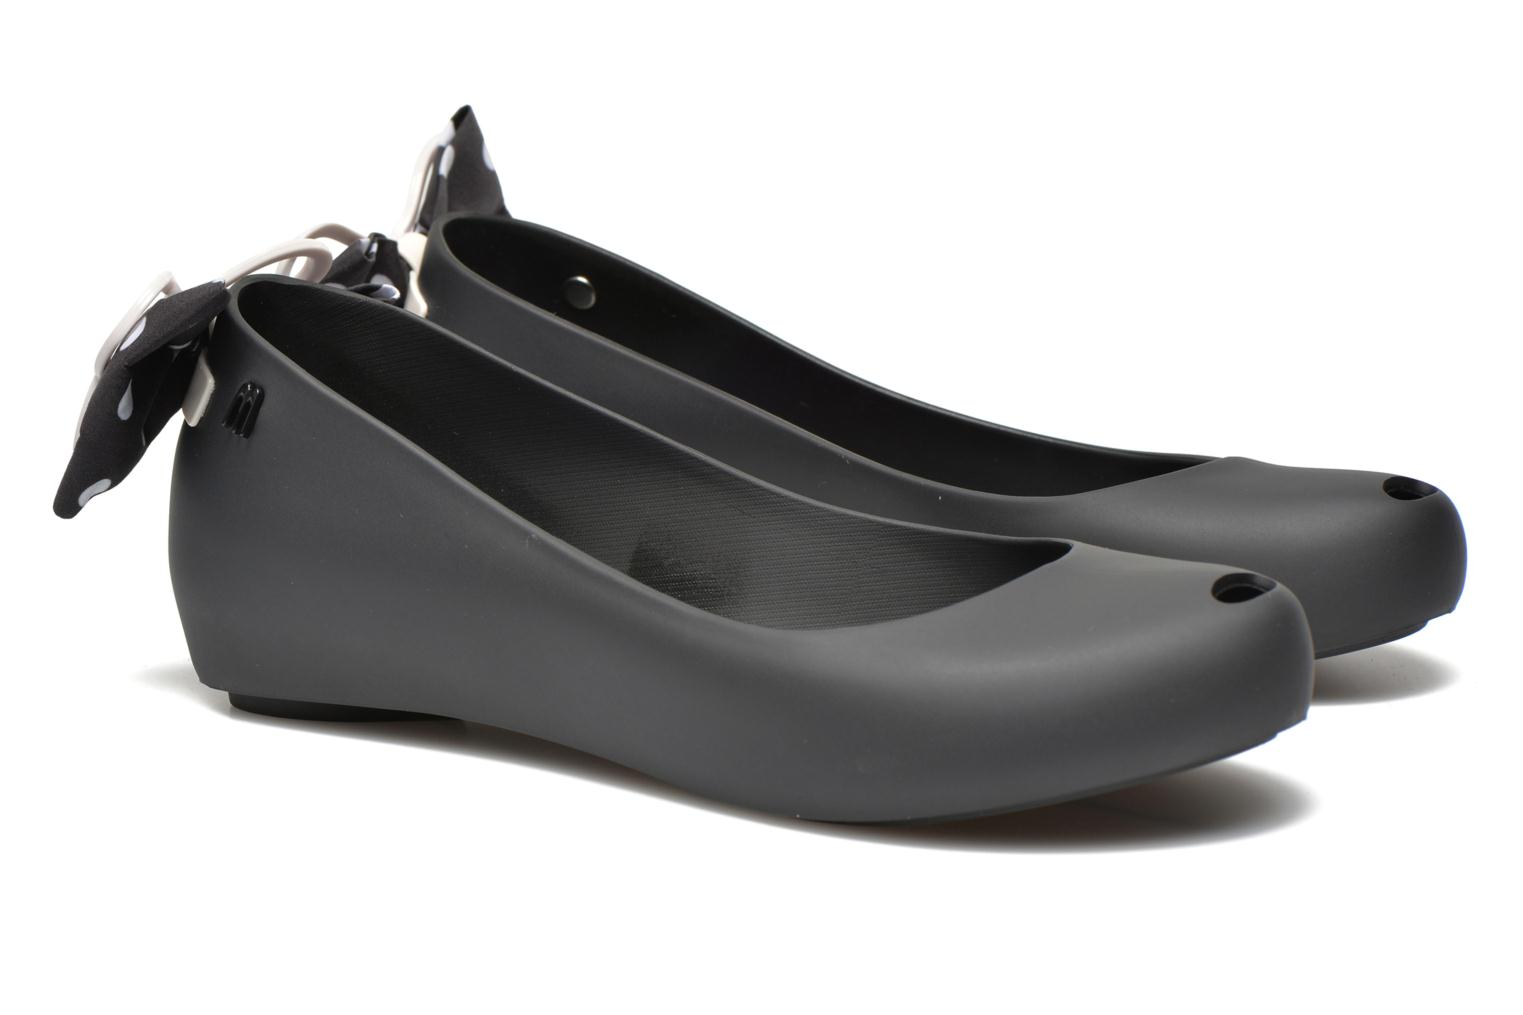 MELISSA ULTRAGIRL+MINNIE II AD 01003 BLACKNEGRO